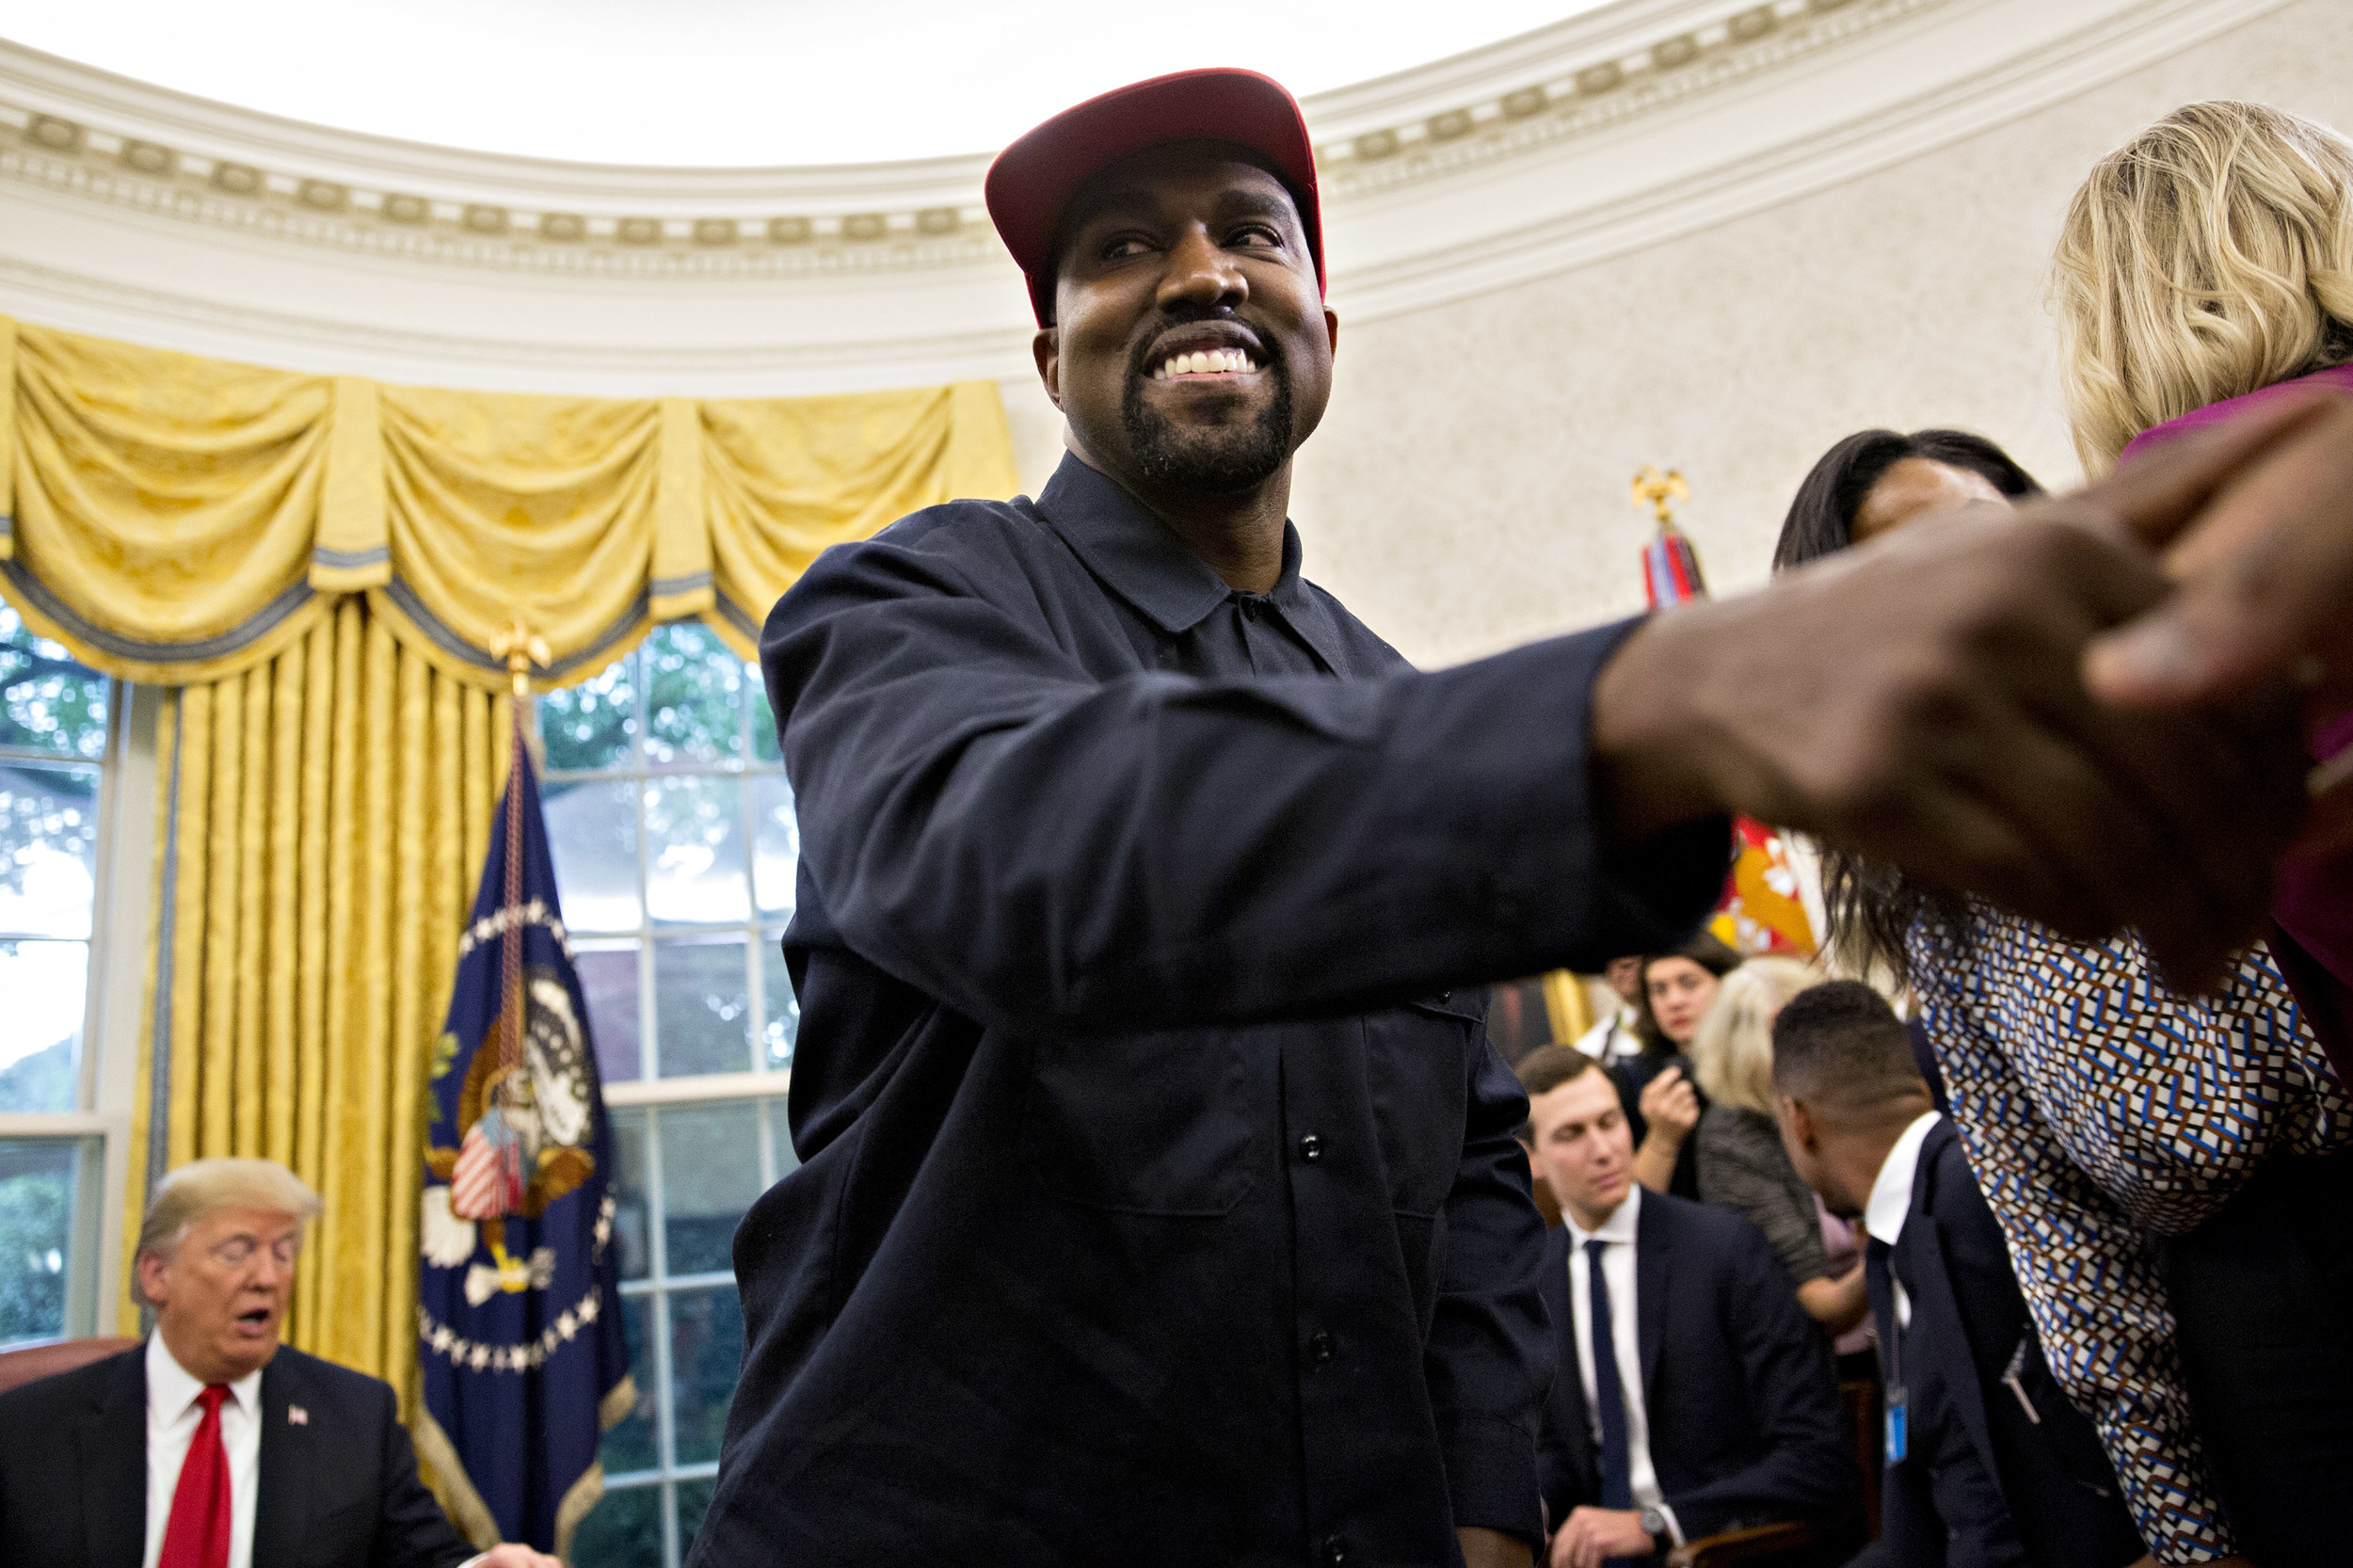 Kanye West donates $150,000 to GoFundMe for Jemel Roberson, who was fatally shot by police